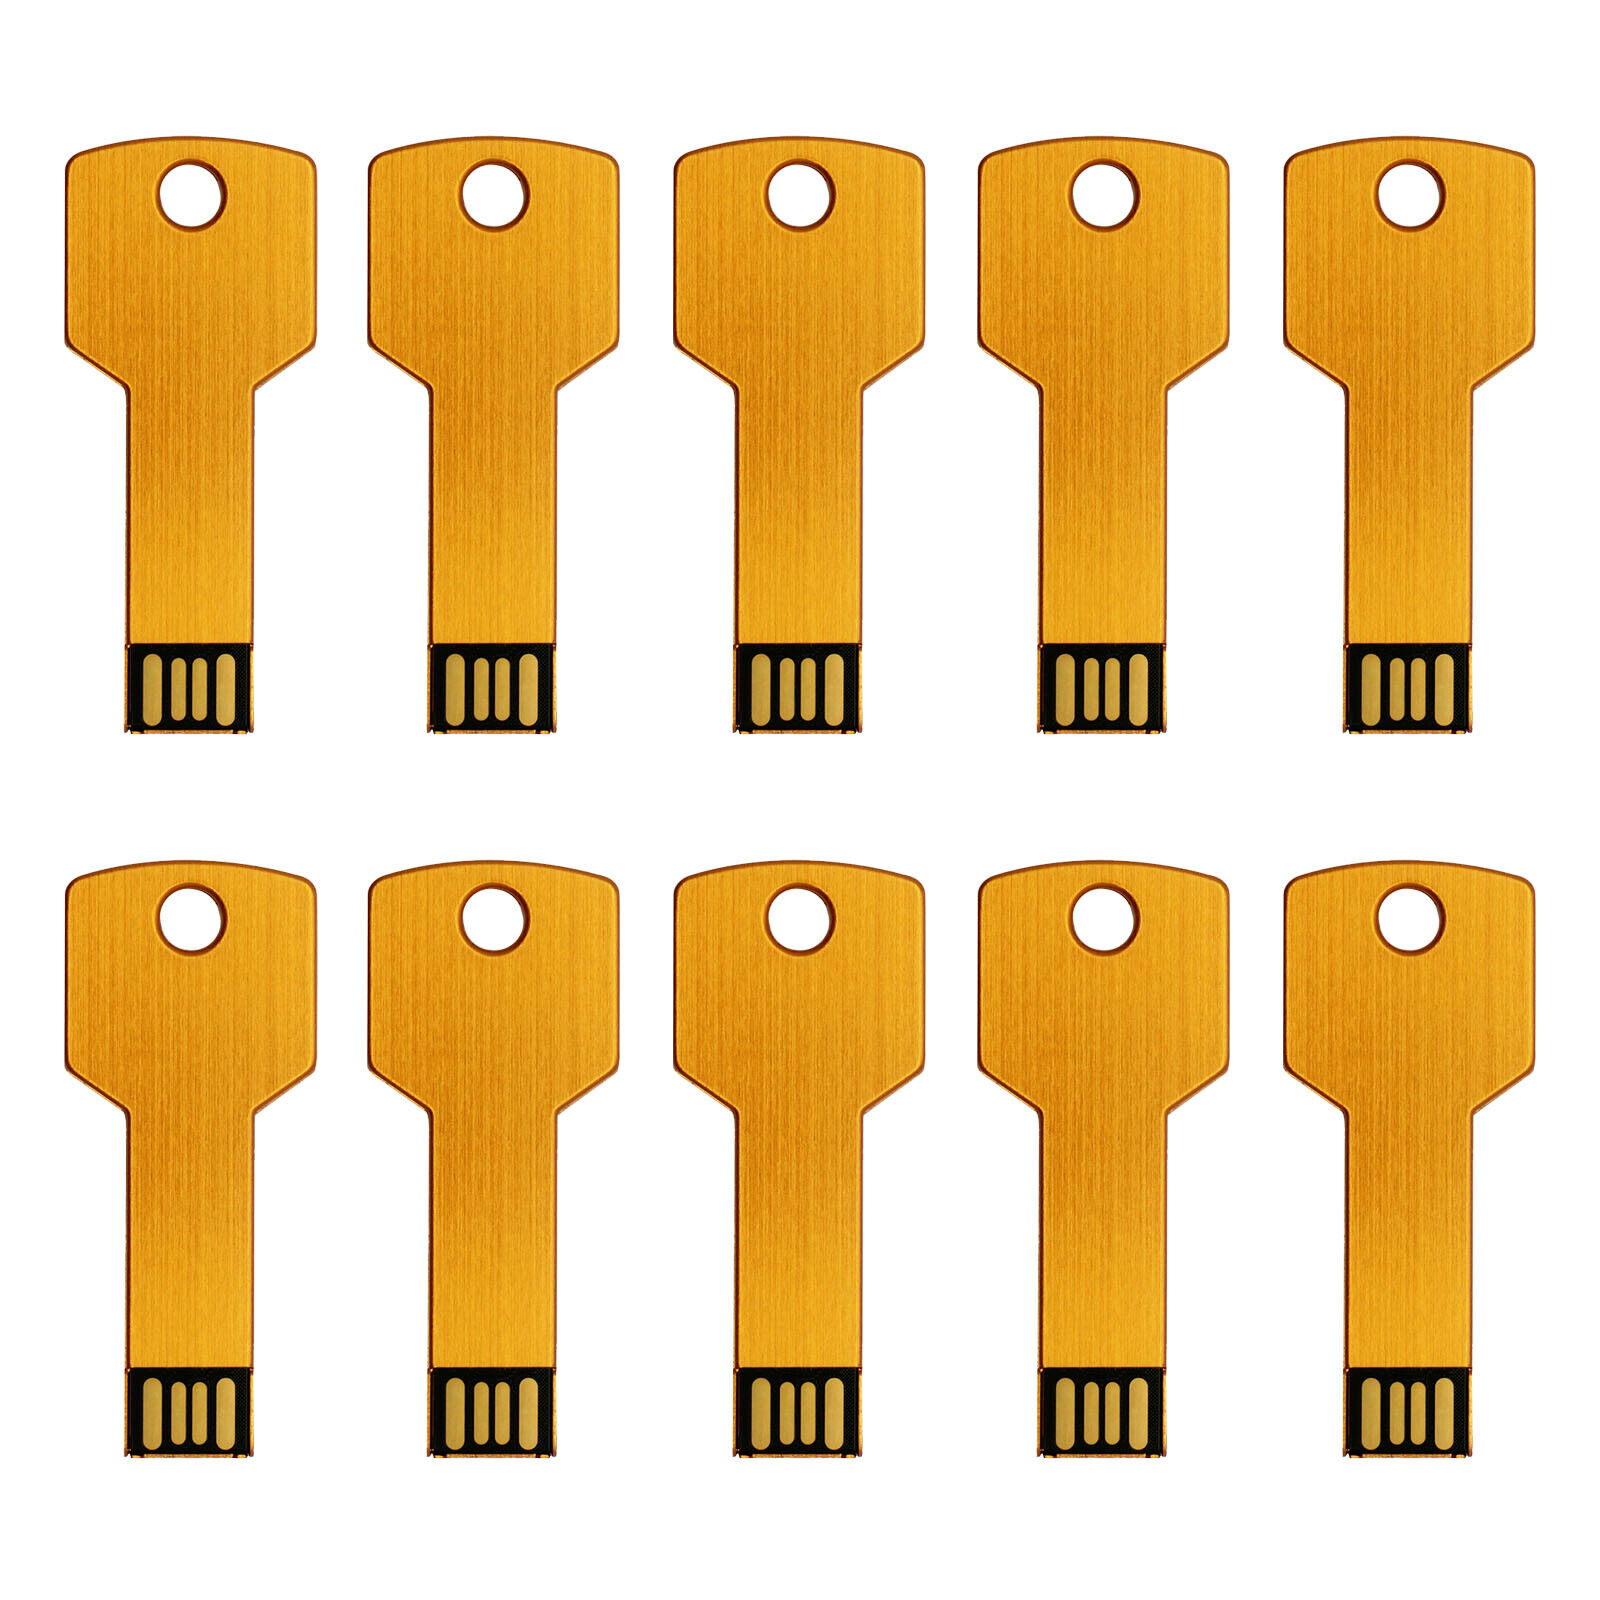 10PCS Metal Key Model 4GB USB 2.0 Flash Drive Memory Stick Thumb Pen U Disk Gold 122